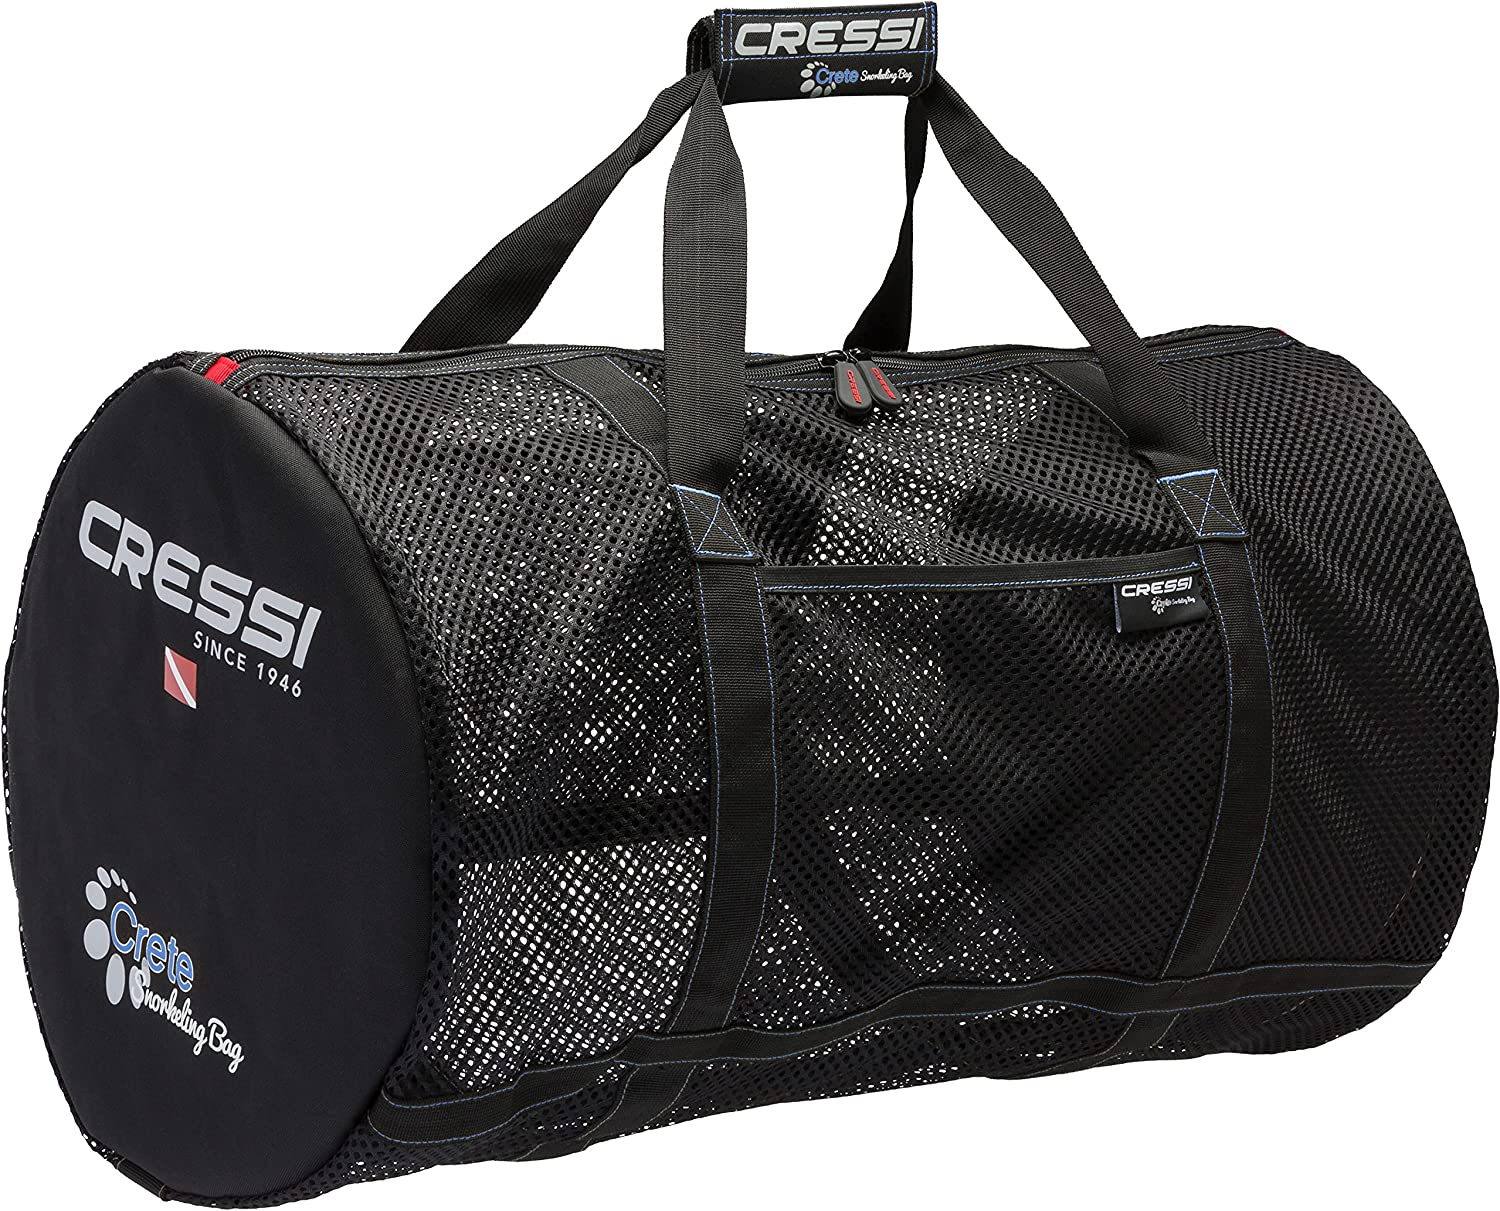 Cressi Strong Foldable Mesh Duffle for Diving Max 61% OFF Scuba Bag SALENEW very popular! Snorkel